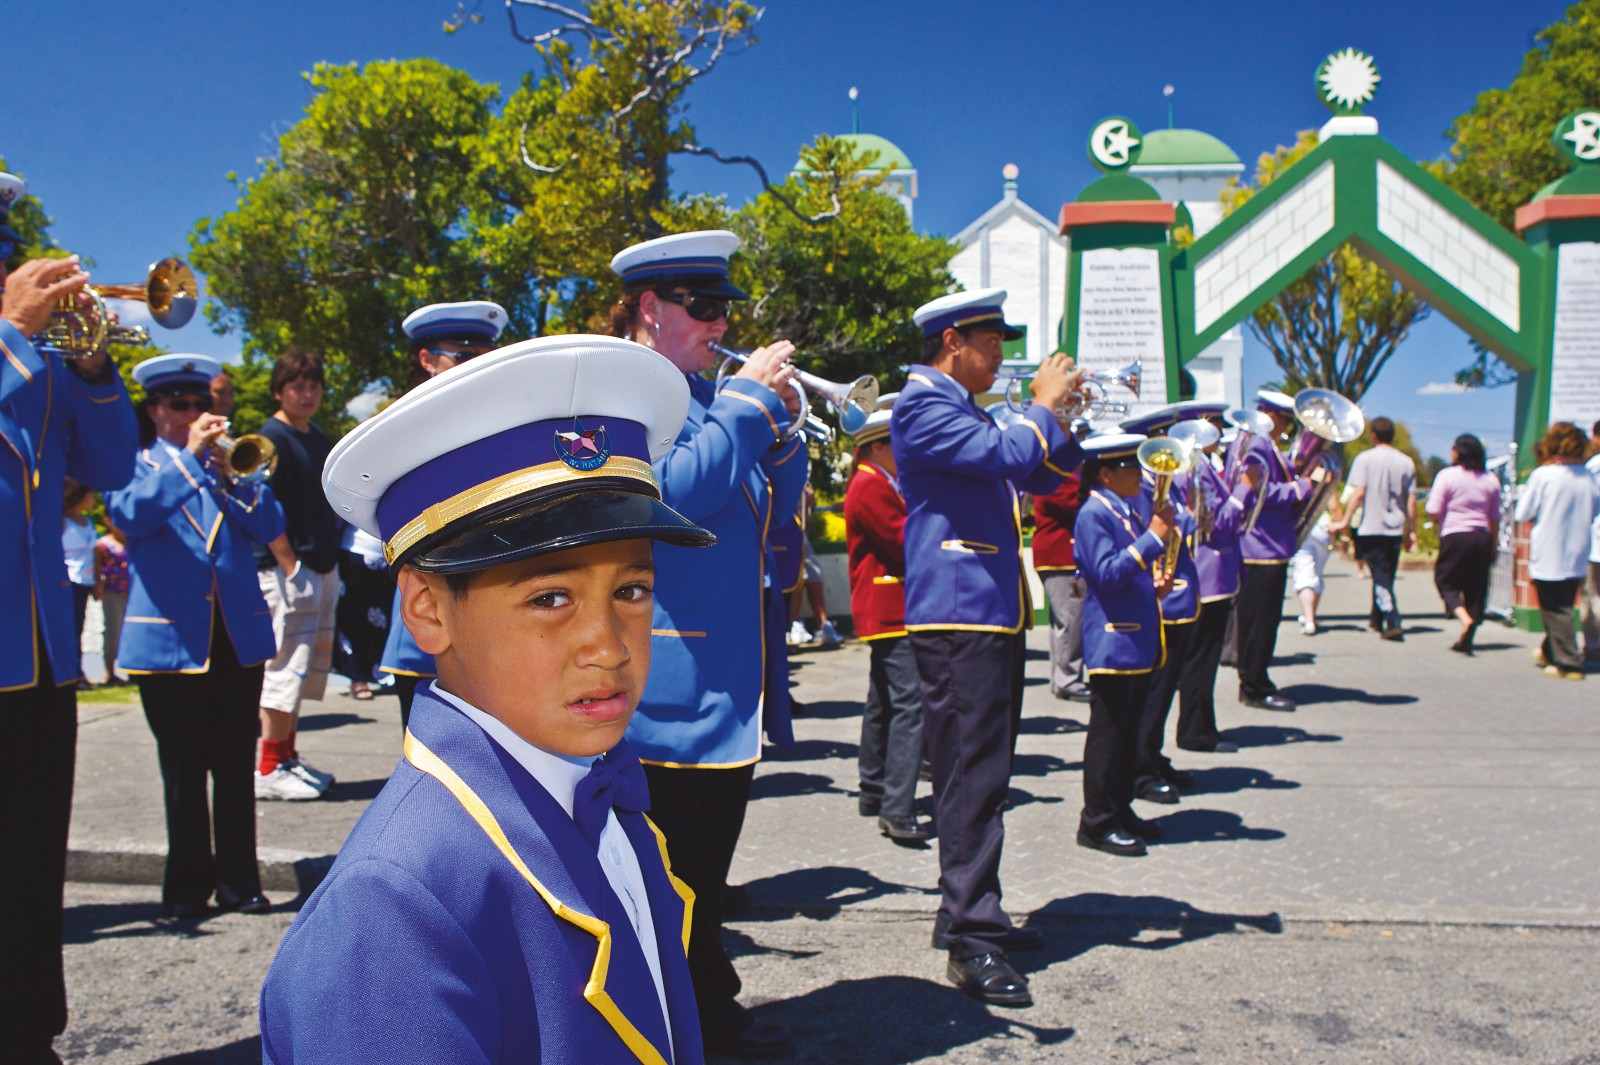 A brass band, always a regular feature at Ratana events, forms a guard of honour as church members enter the temple gates for a service. Generations of families visit Ratana Pa every year, many because a family member was touched by Ratana's ministry decades earlier.